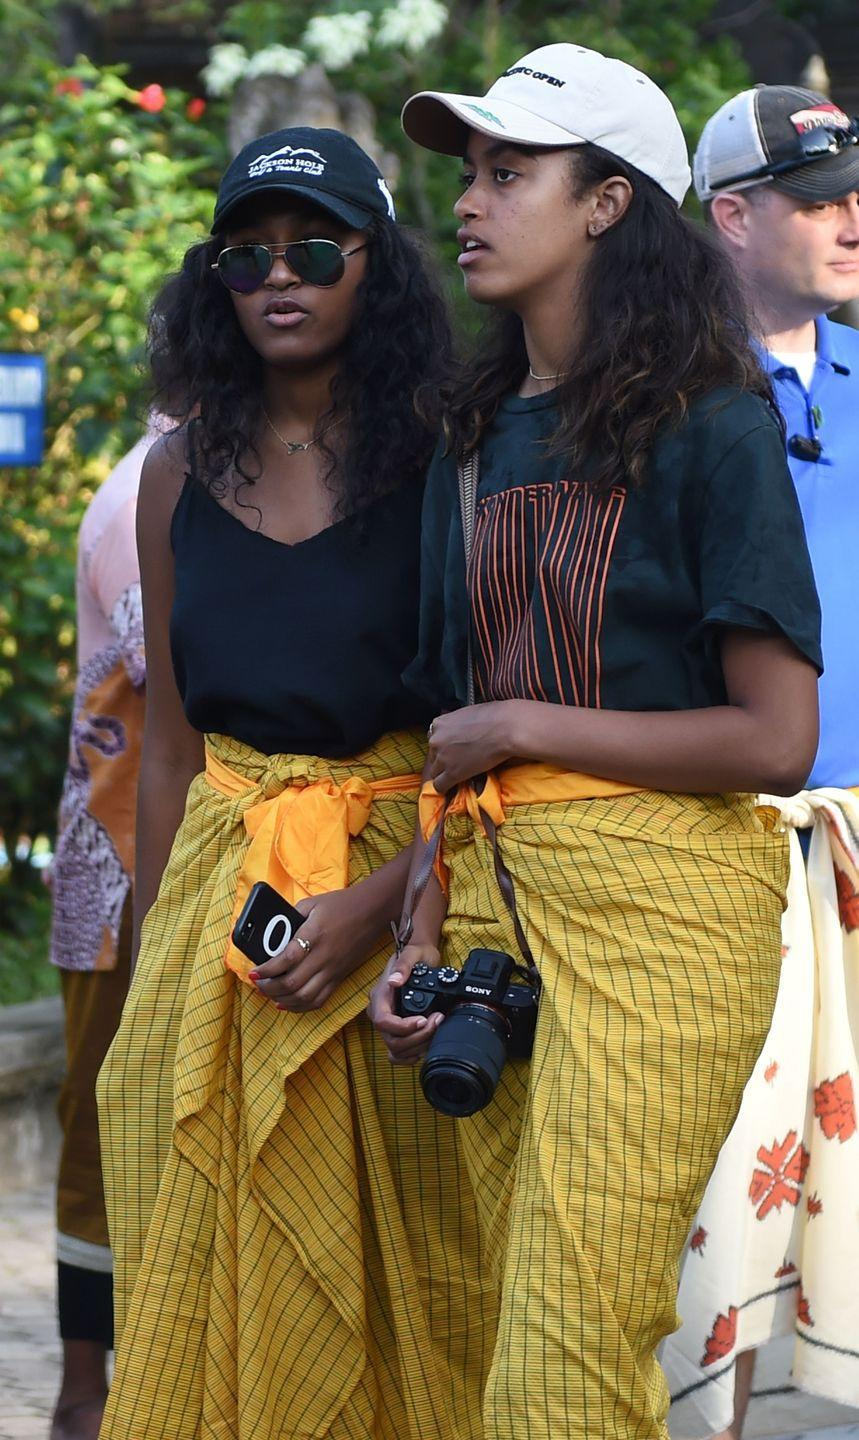 <p>Americans quite literally saw Malia and Sasha Obama grow up before their eyes, since Sasha was 7 and Malia was 10 when their dad became President. Throughout his eight years in the White House, the girls' style matured as time passed.</p>